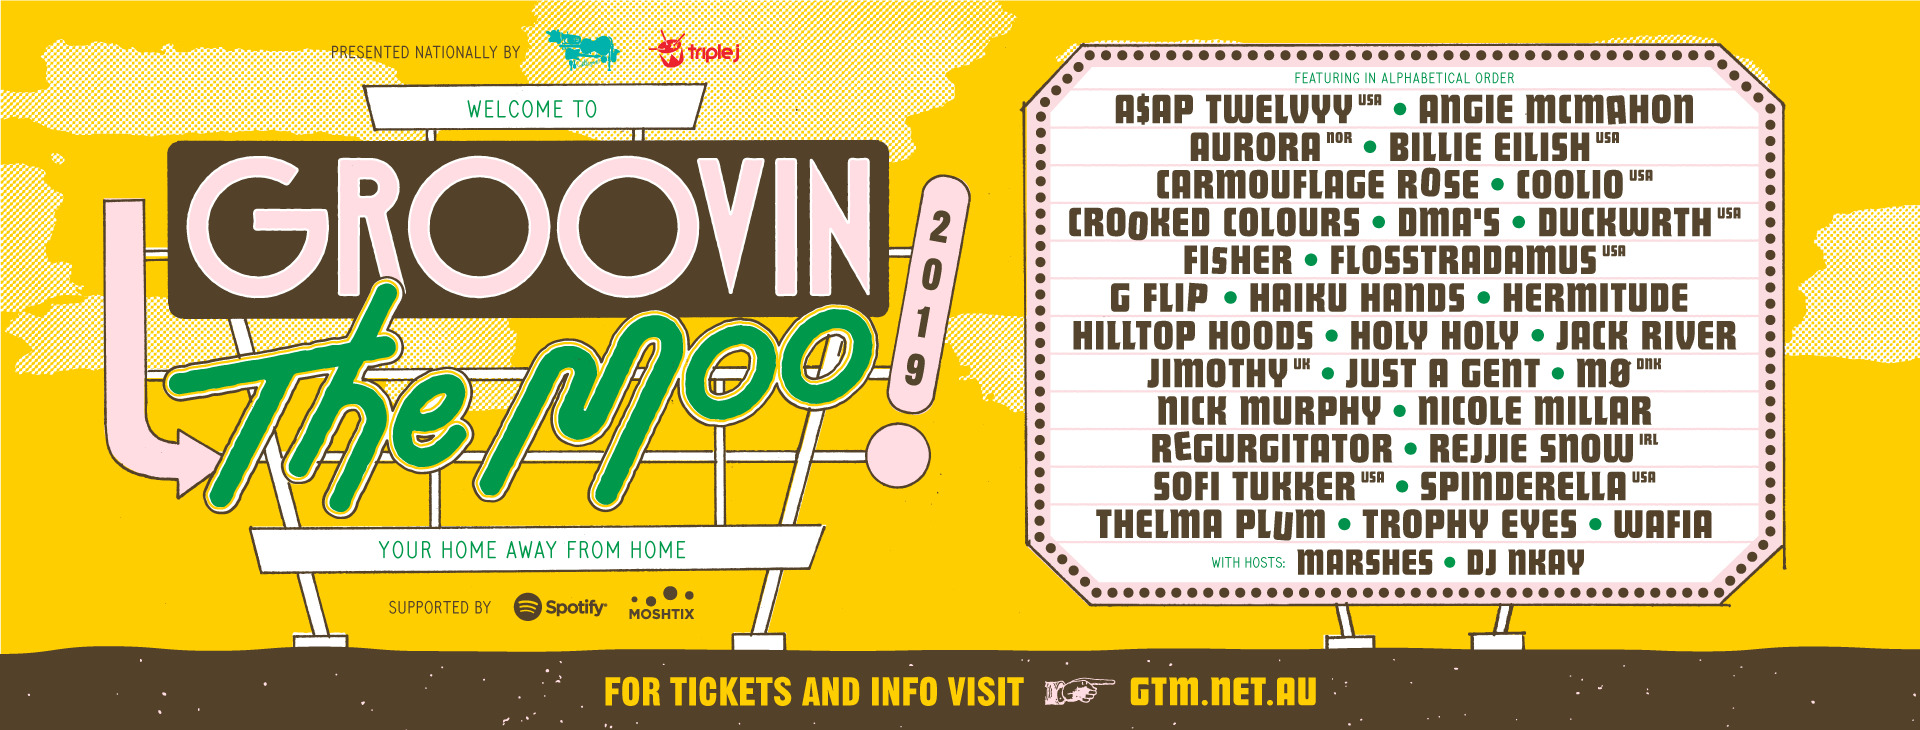 groovin-the-moo-music-festival-community-event-fun1.jpg